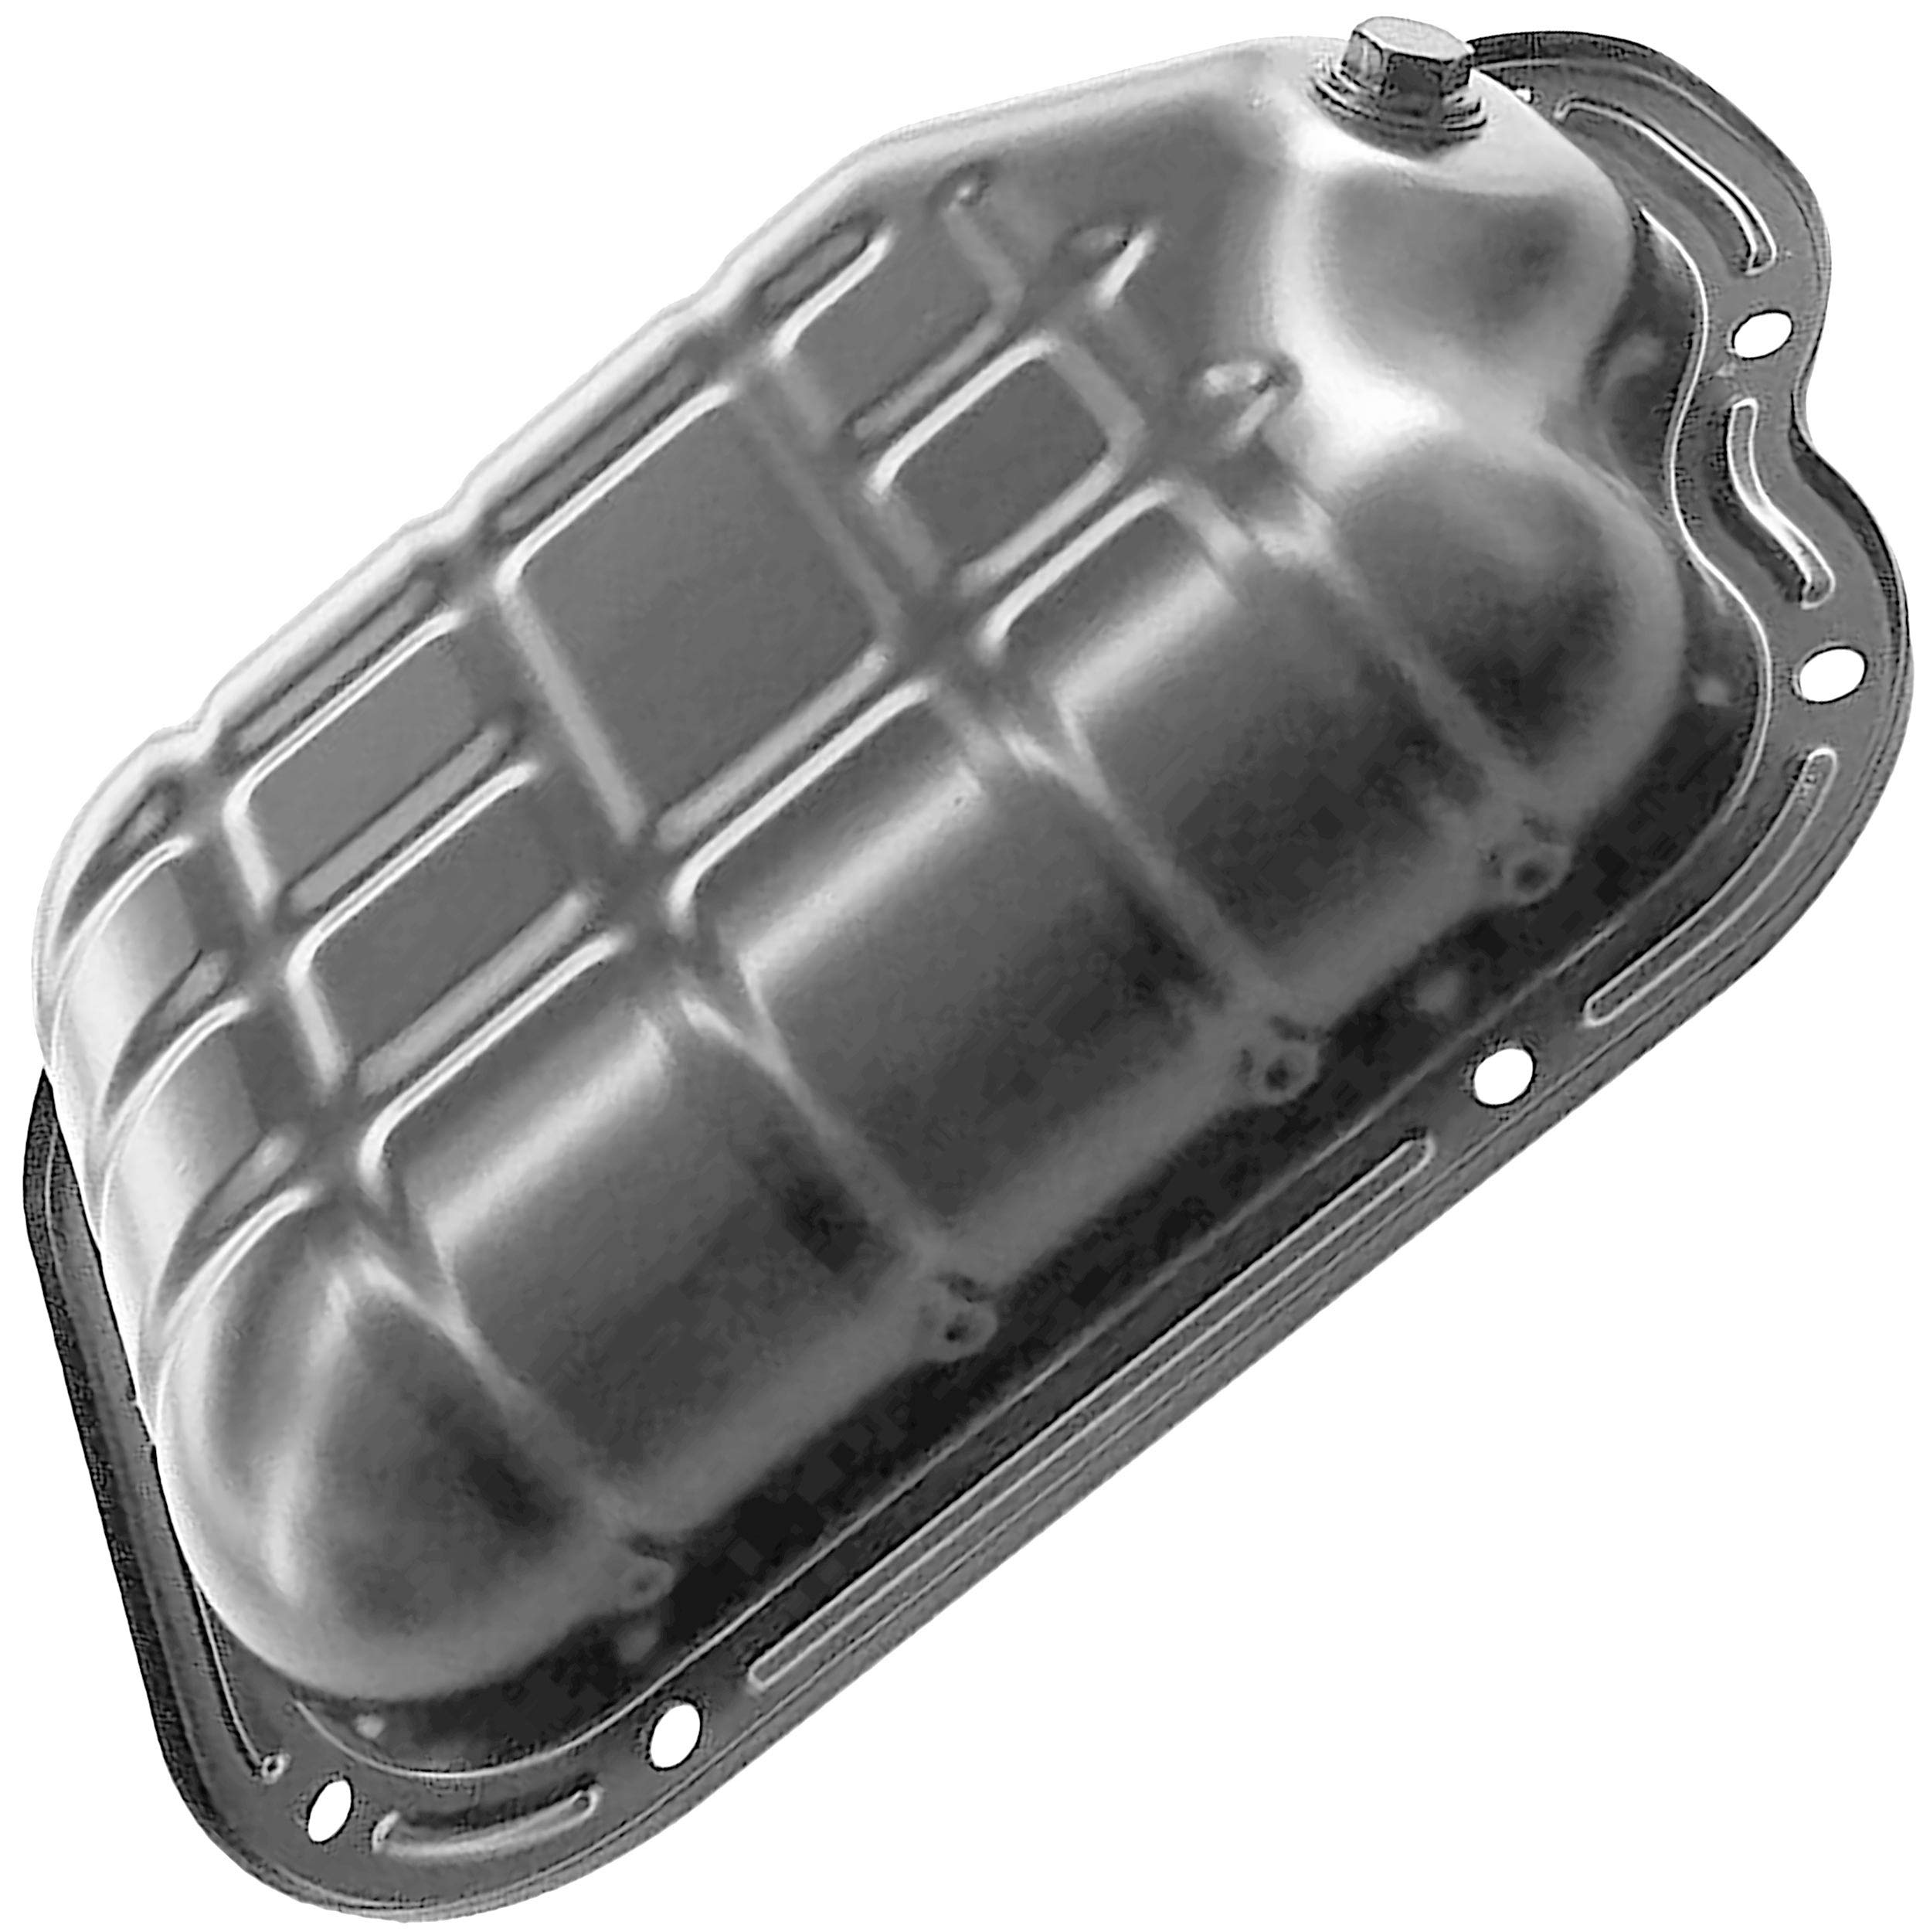 APDTY 375616 Engine Oil Pan Fits 00-01 Infiniti I30, 02-04 Infiniti I35, 02-06 Nissan Altima, 00-08 Maxima, 03-07 Murano, 04-09 Quest (V6 3.5L engine ONLY) (Replaces 11110-2Y000, 11110-ZA000)